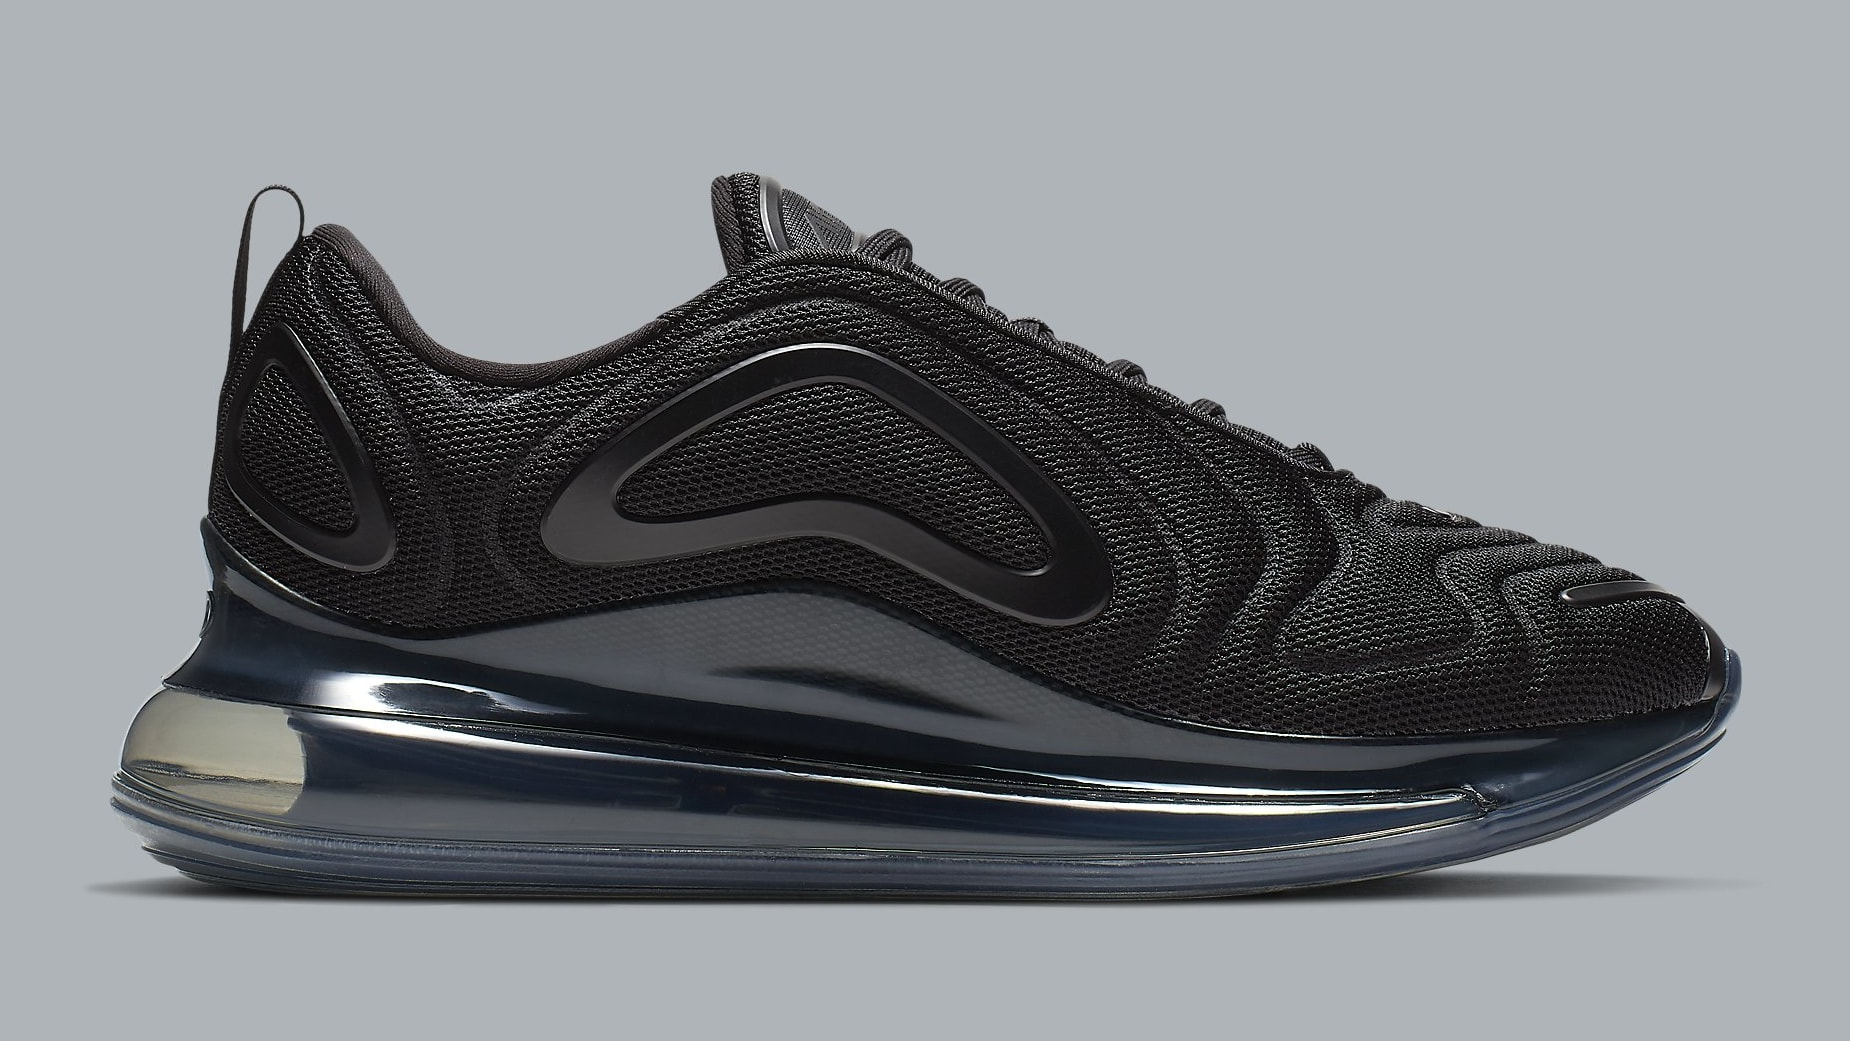 f2d679cf99 Nike Air Max 720 'Triple Black' Release Date AO2924-007 | Sole Collector